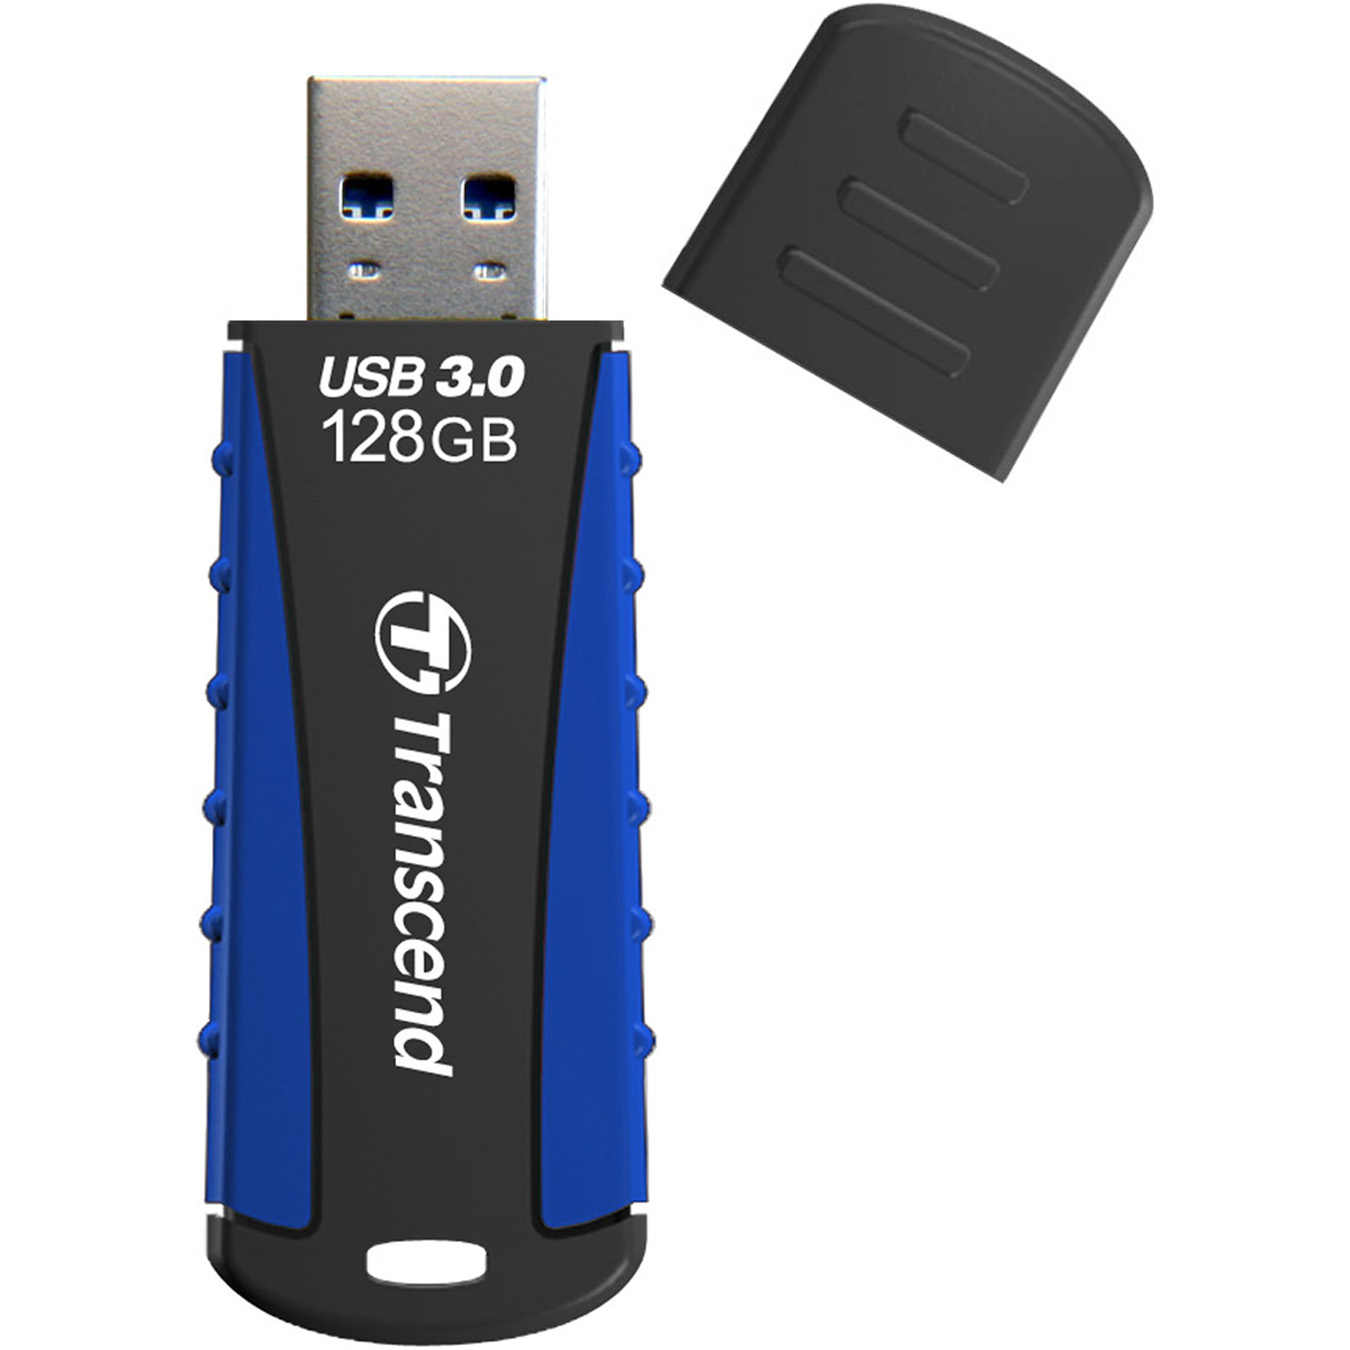 128GB JETFLASH 810 FLASH DRIVE USB 3.0